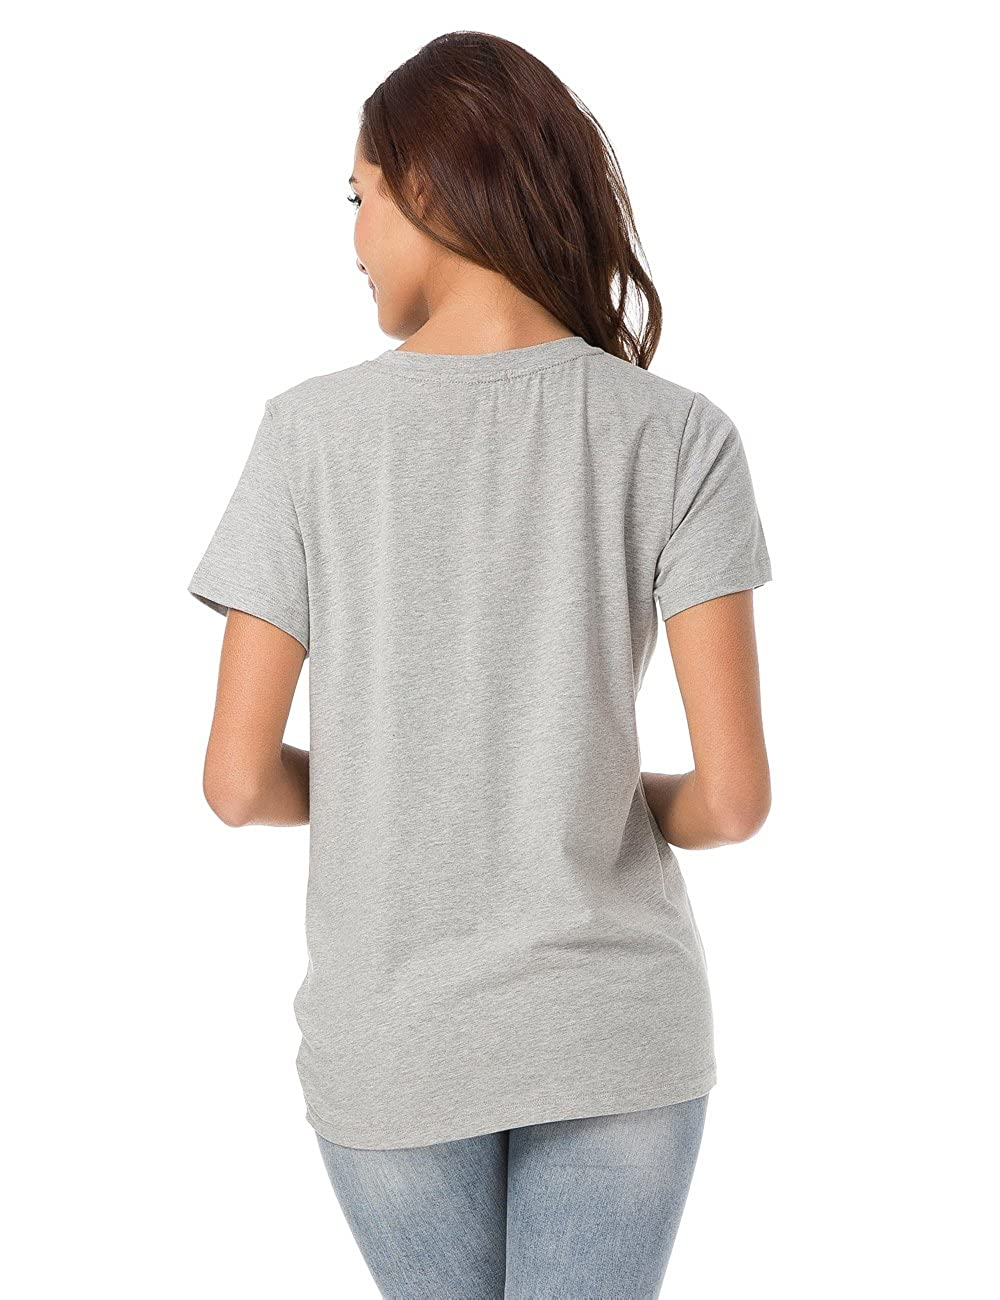 LUSMAY Womens Short Sleeve Loose Twist Knot Front T Shirts Cotton Casual Blouse